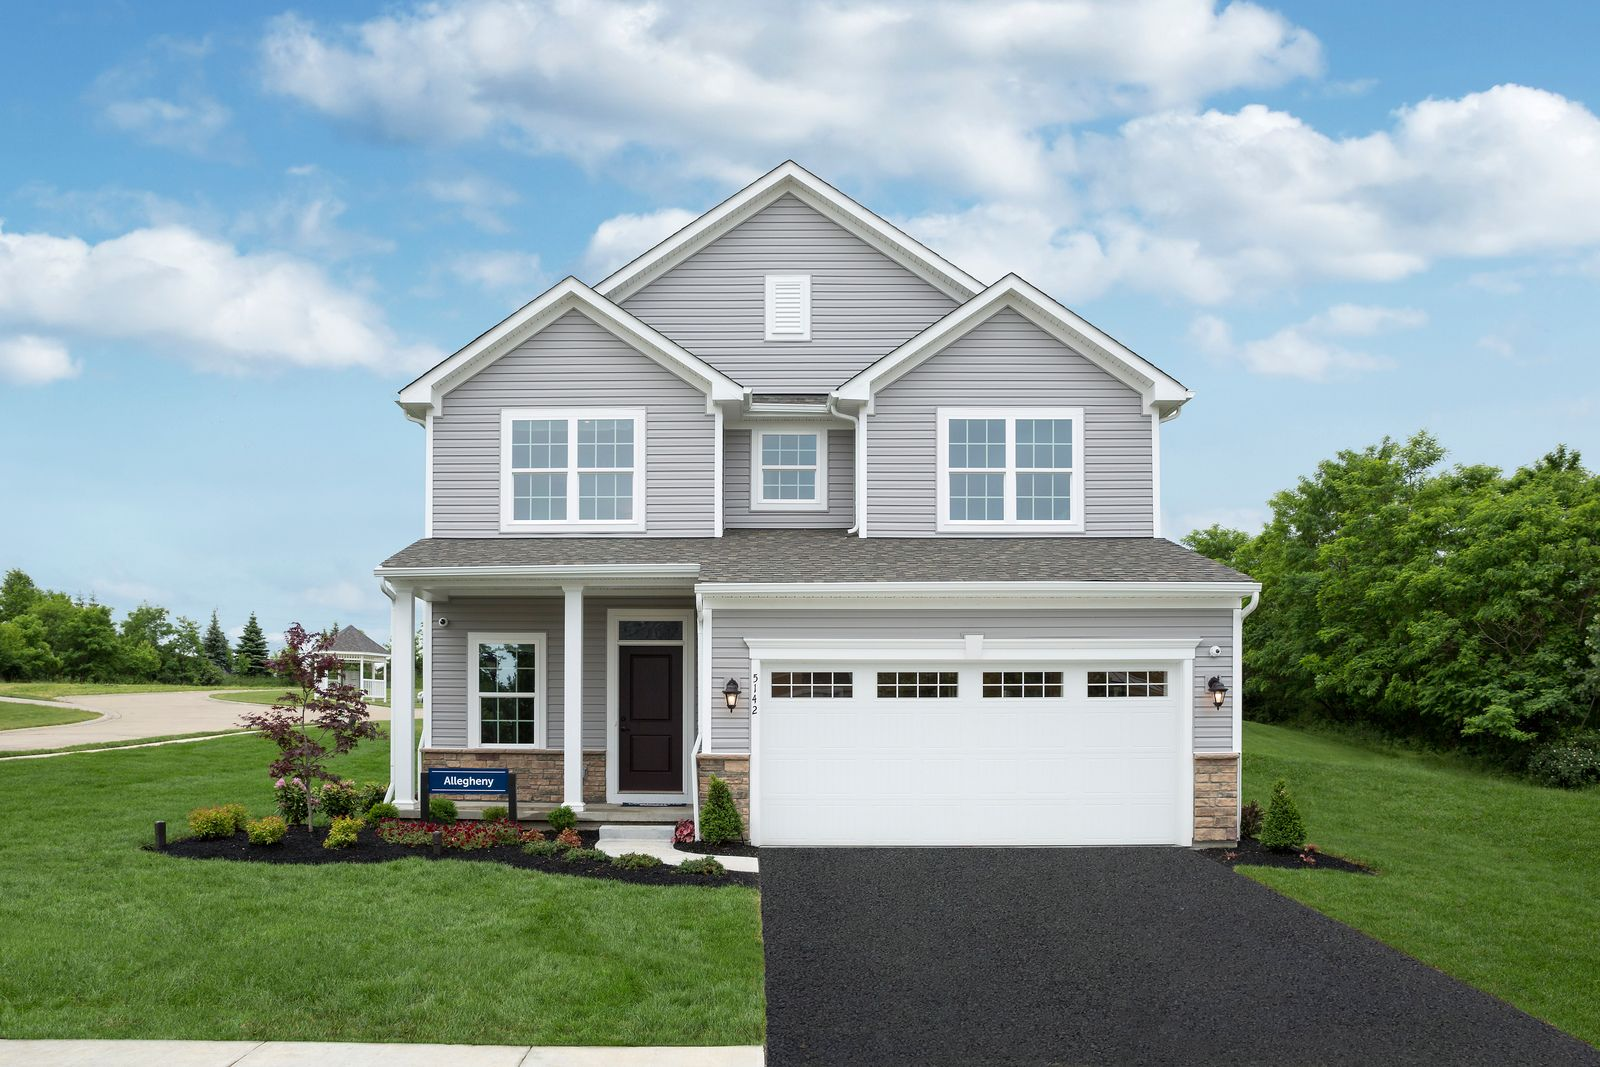 WELCOME HOME TO NORTH VILLAGE CROSSING:New single-family homes close to dining, shopping, and recreation in Sparta.Schedule a one-on-one appointment today to learn more!